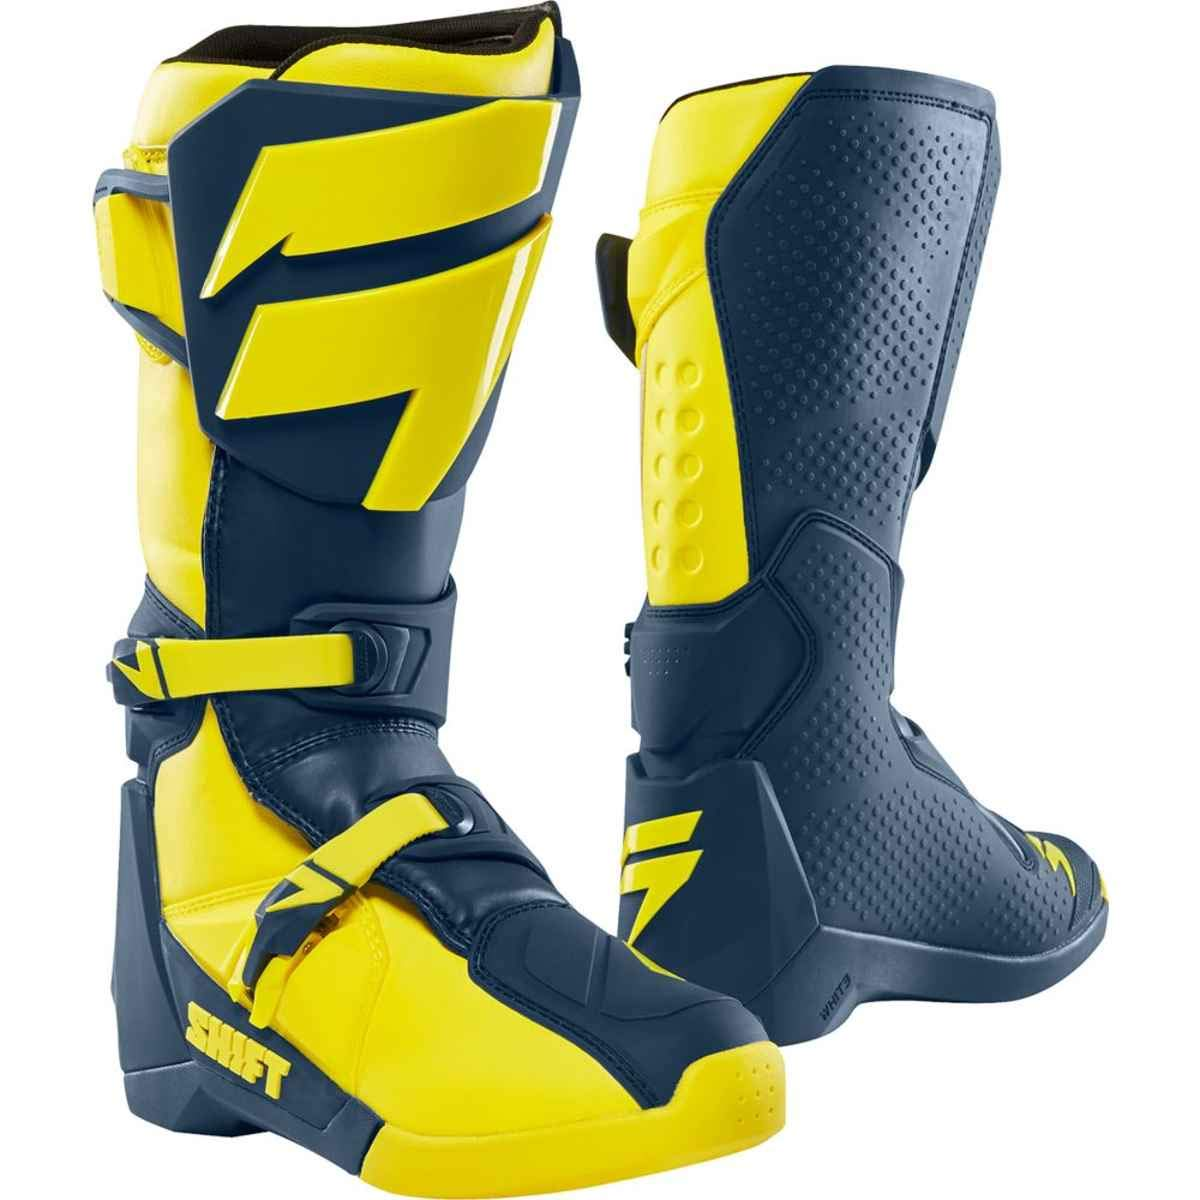 YELLOW//NAVY 11 Shift 2019 White Label Boots